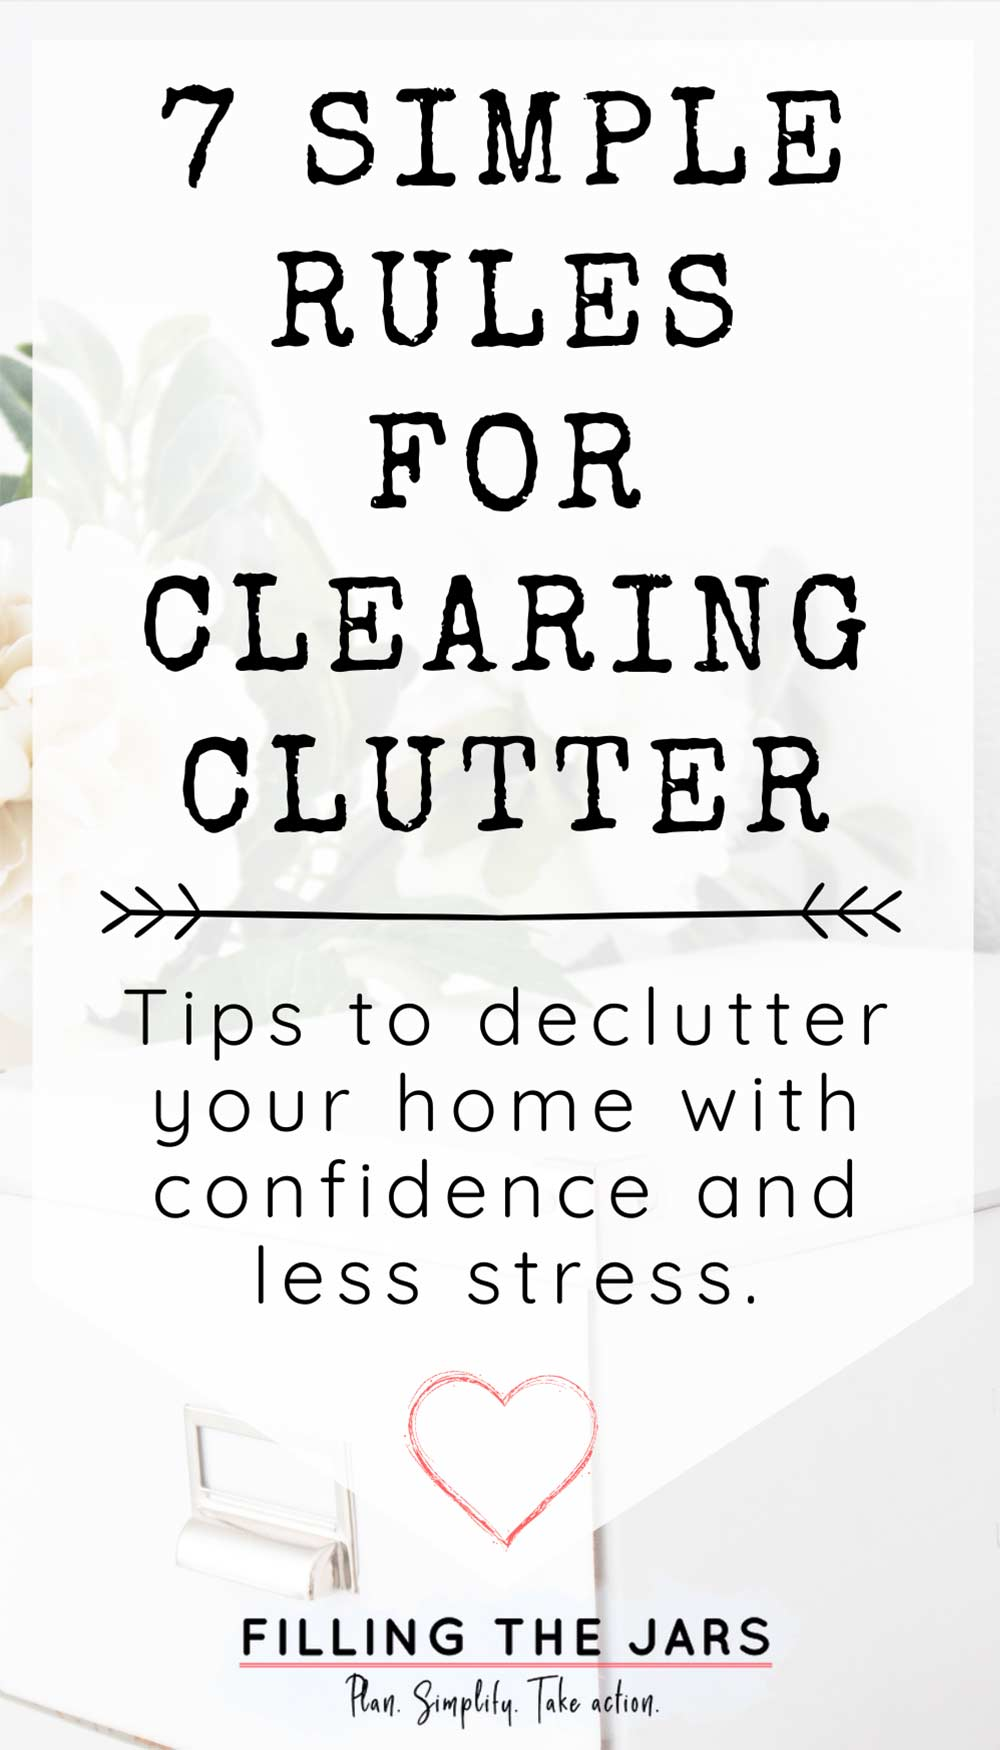 text tips for clearing clutter on white background over image of white storage box and flowers